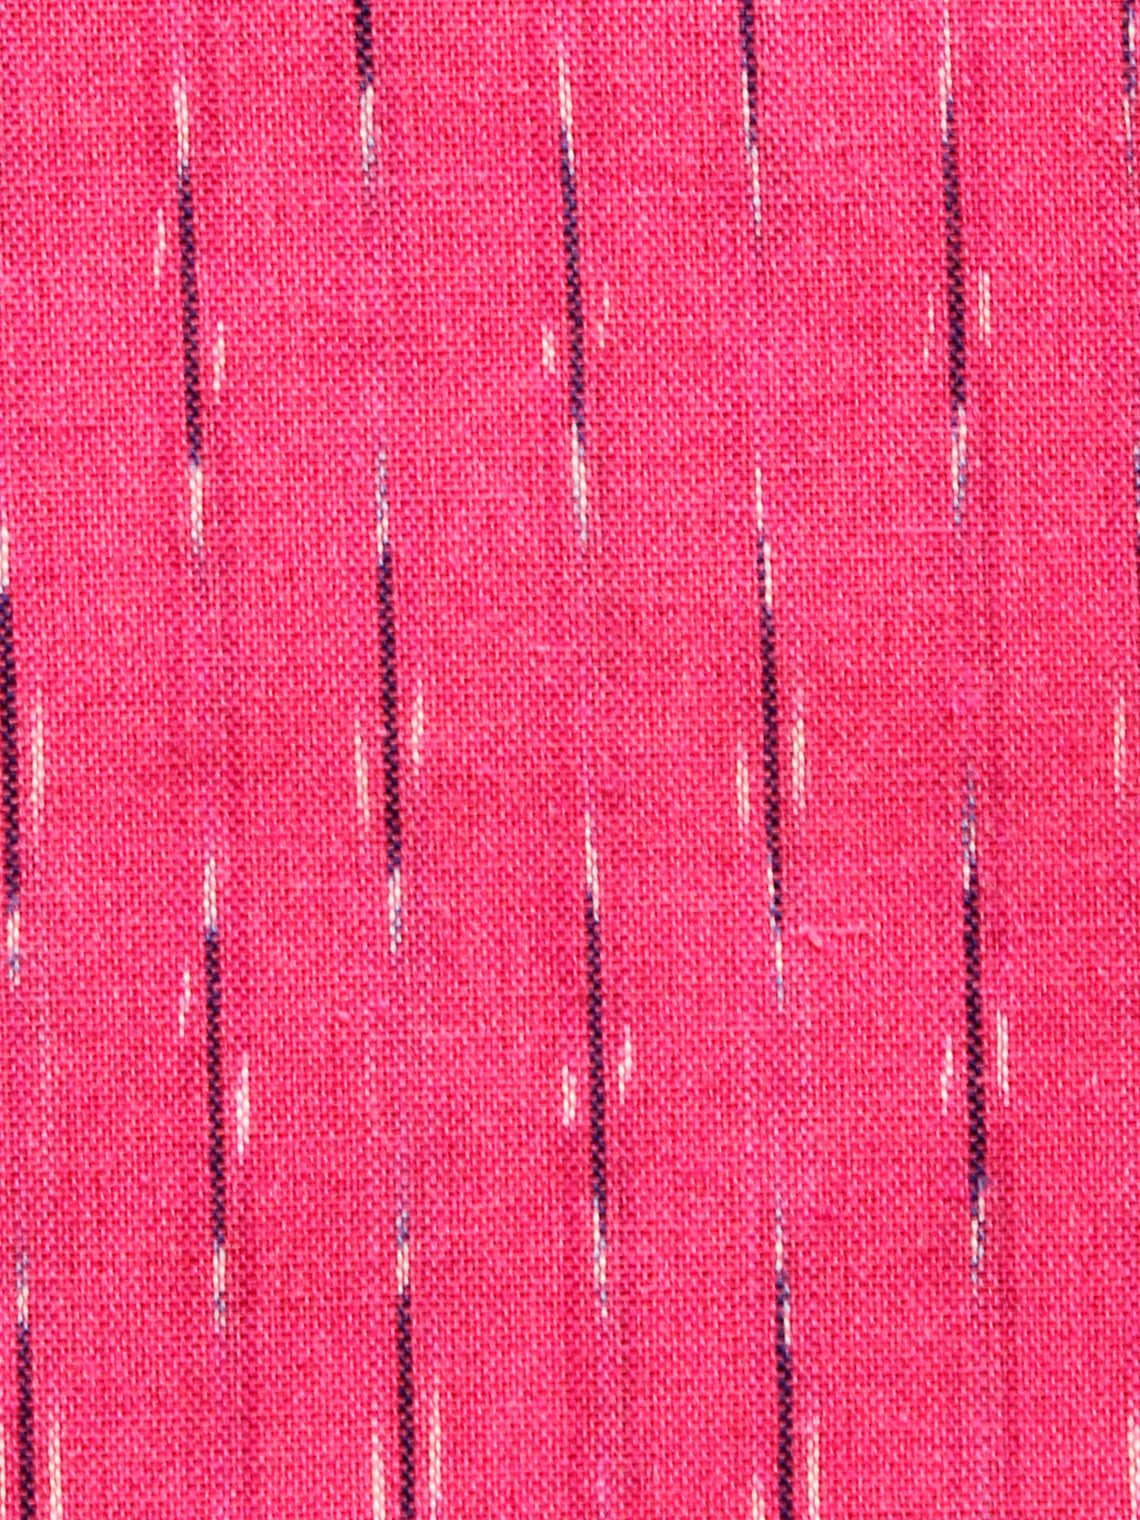 Coral Red Black White Hand Woven Ikat Handloom Cotton Fabric Per Meter - F002F1473